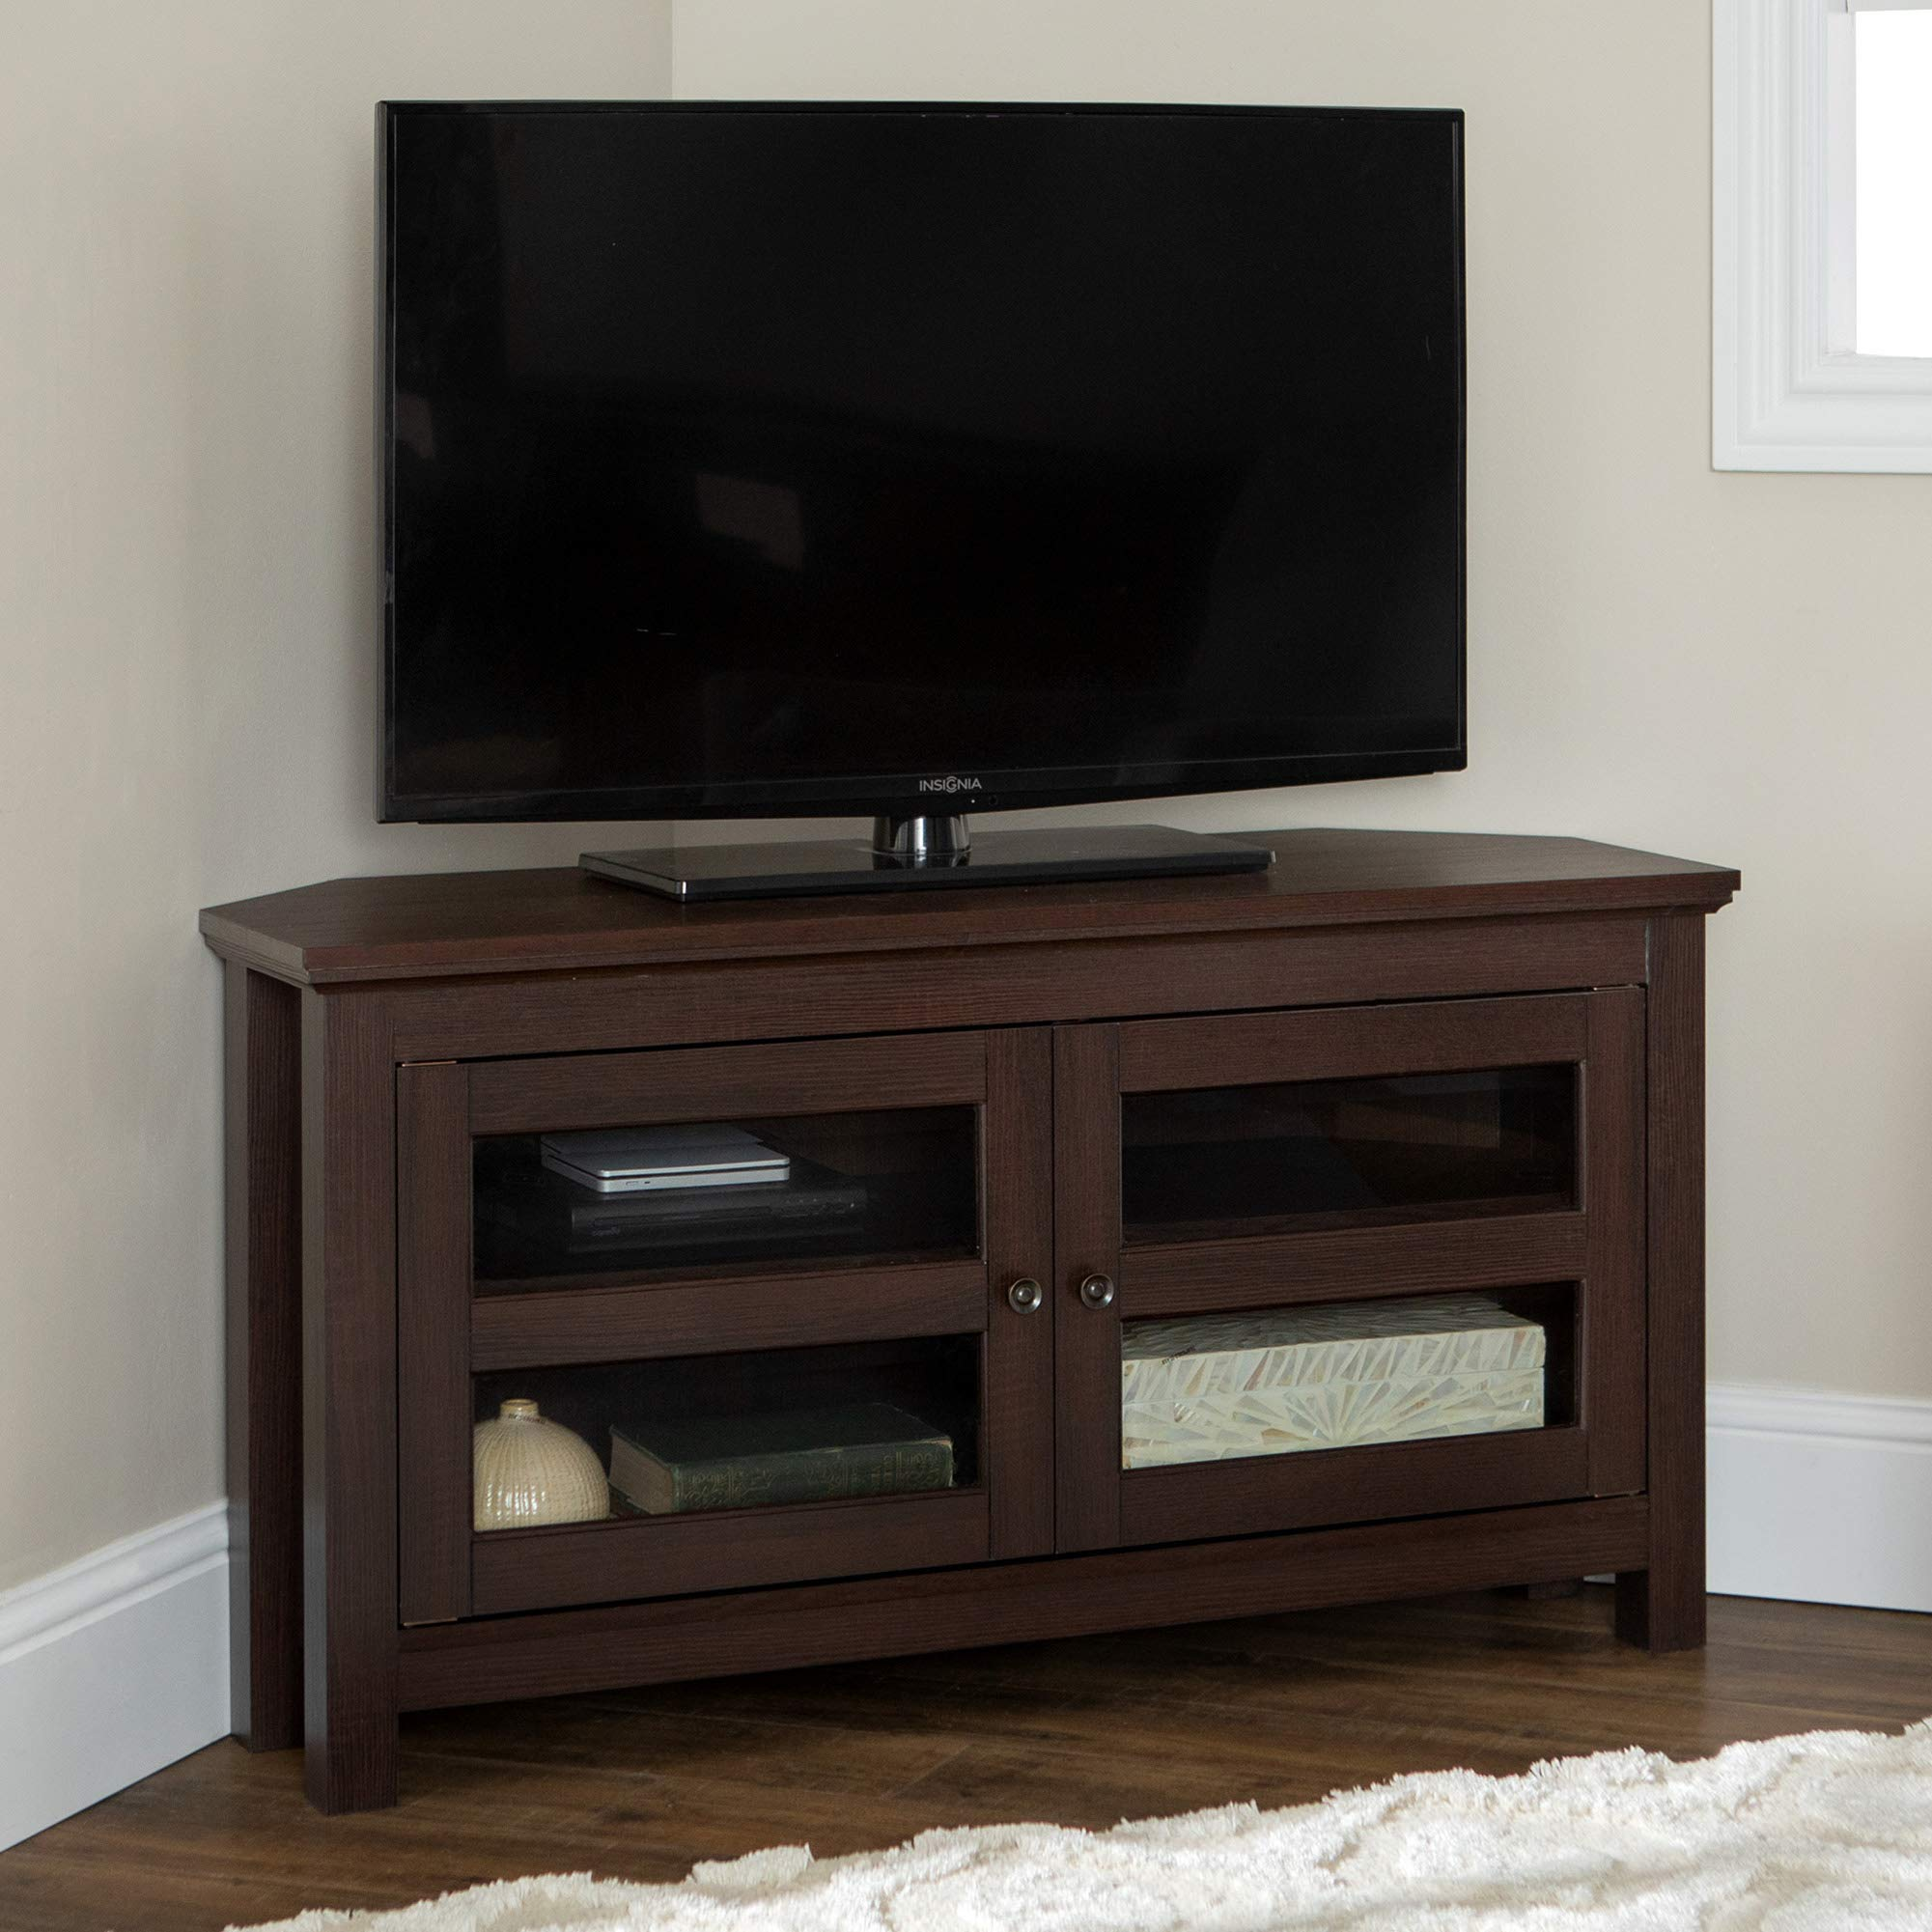 WE Furniture Modern Farmhouse Wood Corner Stand for TV's up to 48'' Living Room Storage, 44 Inch, Espresso Brown by WE Furniture